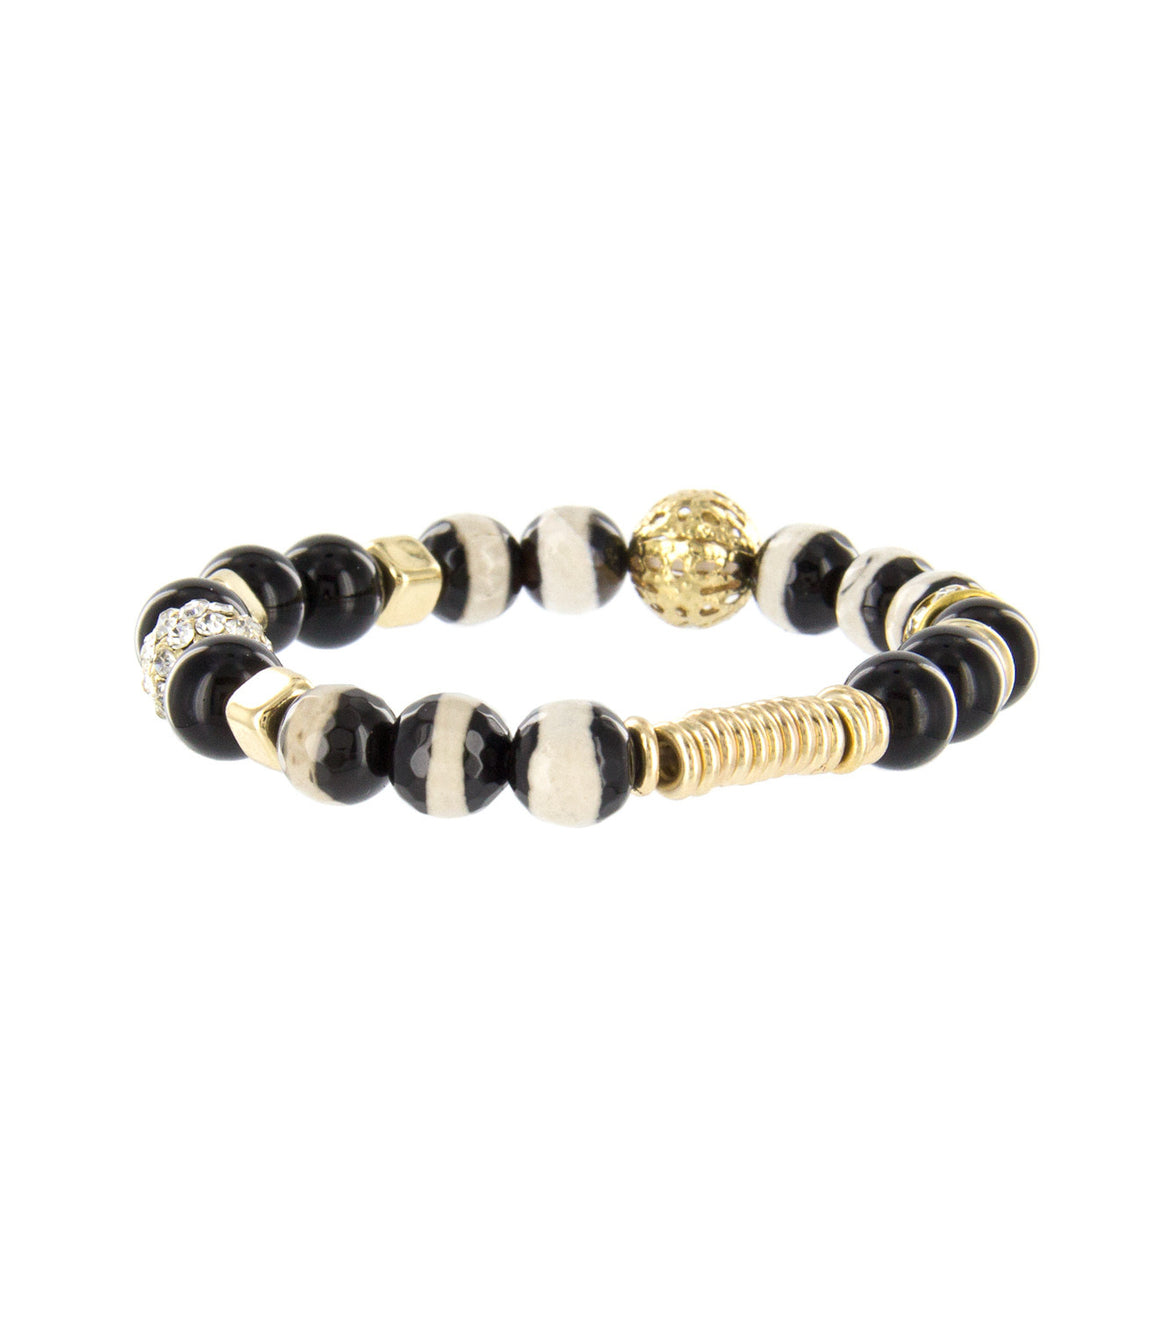 Abstract pattern black and white Bead Bracelet.